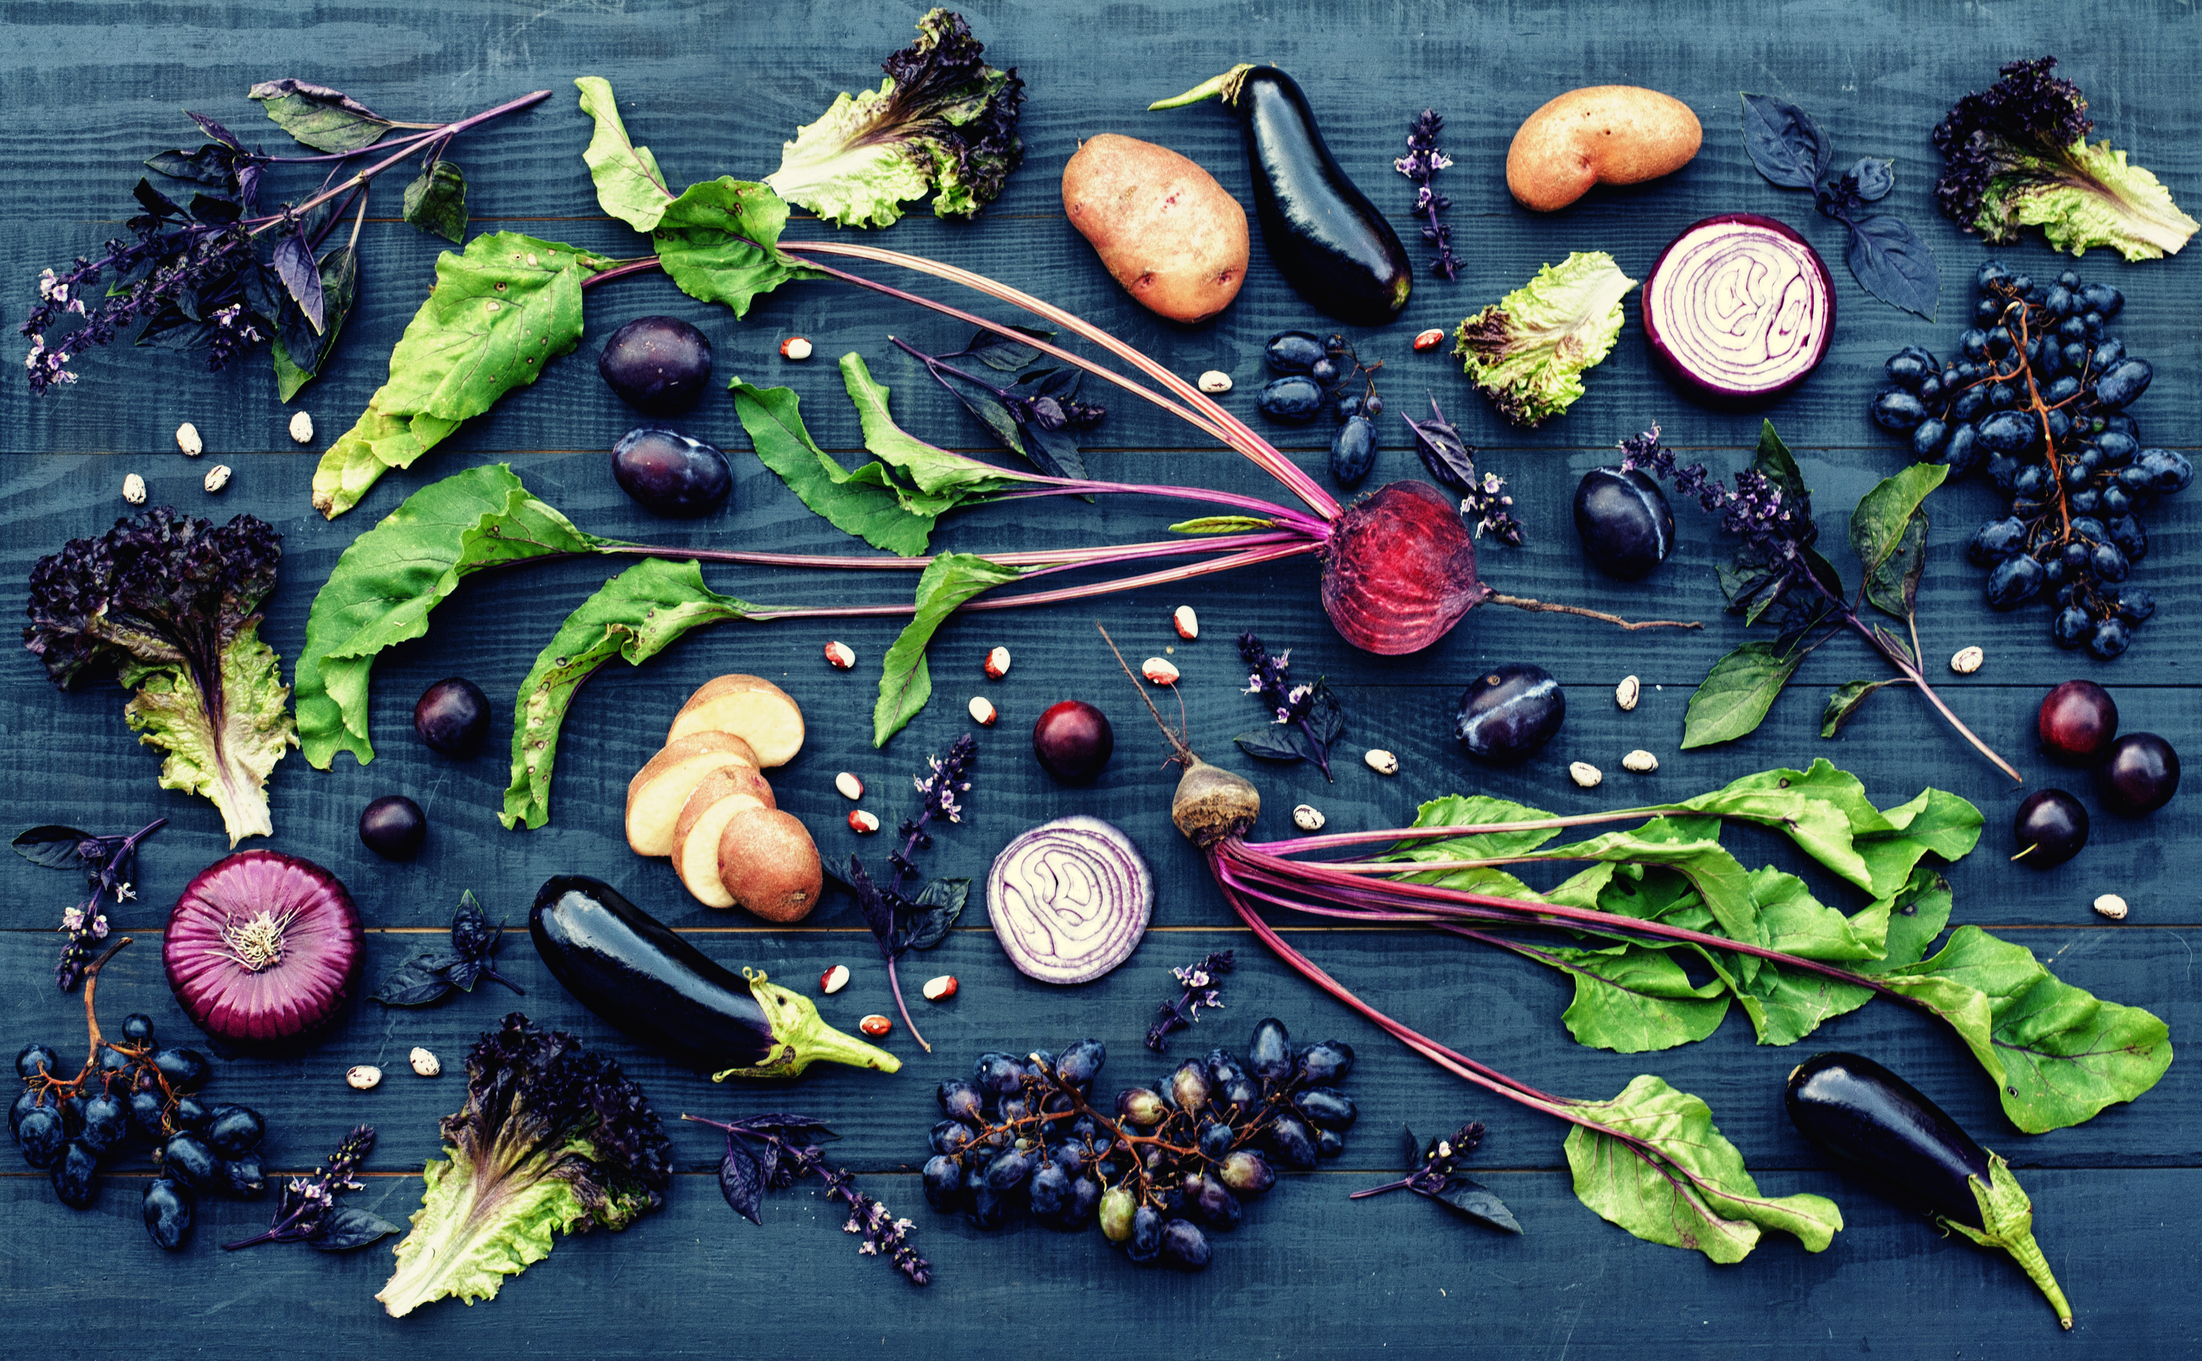 A variety of vegetables spread out on a wooden table including eggplant, radishes and grapes.